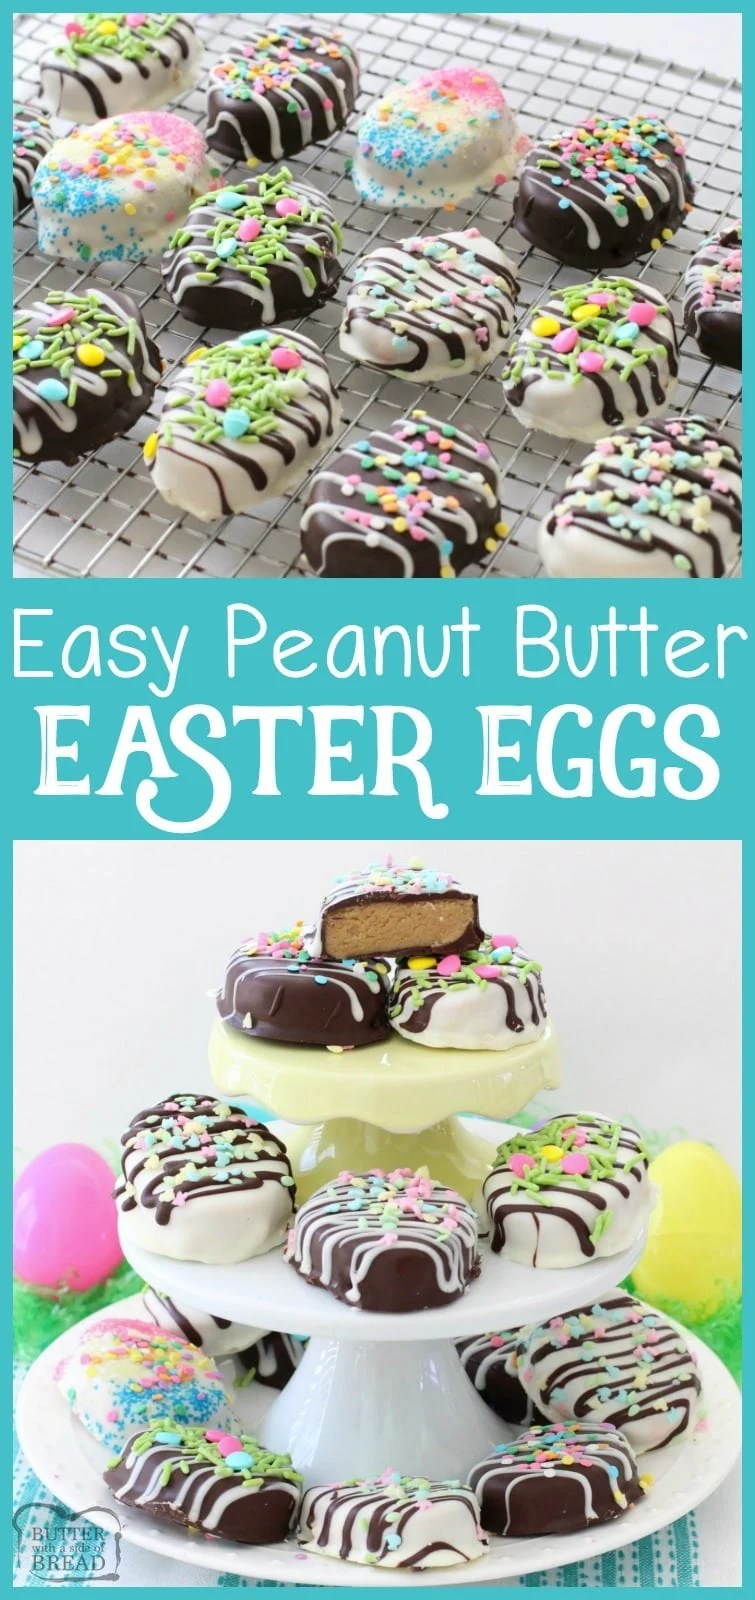 Peanut Butter Easter Eggs are simple to create and the chocolate peanut butter combination make the perfect soft and sweet filling! Plus, they are adorable!